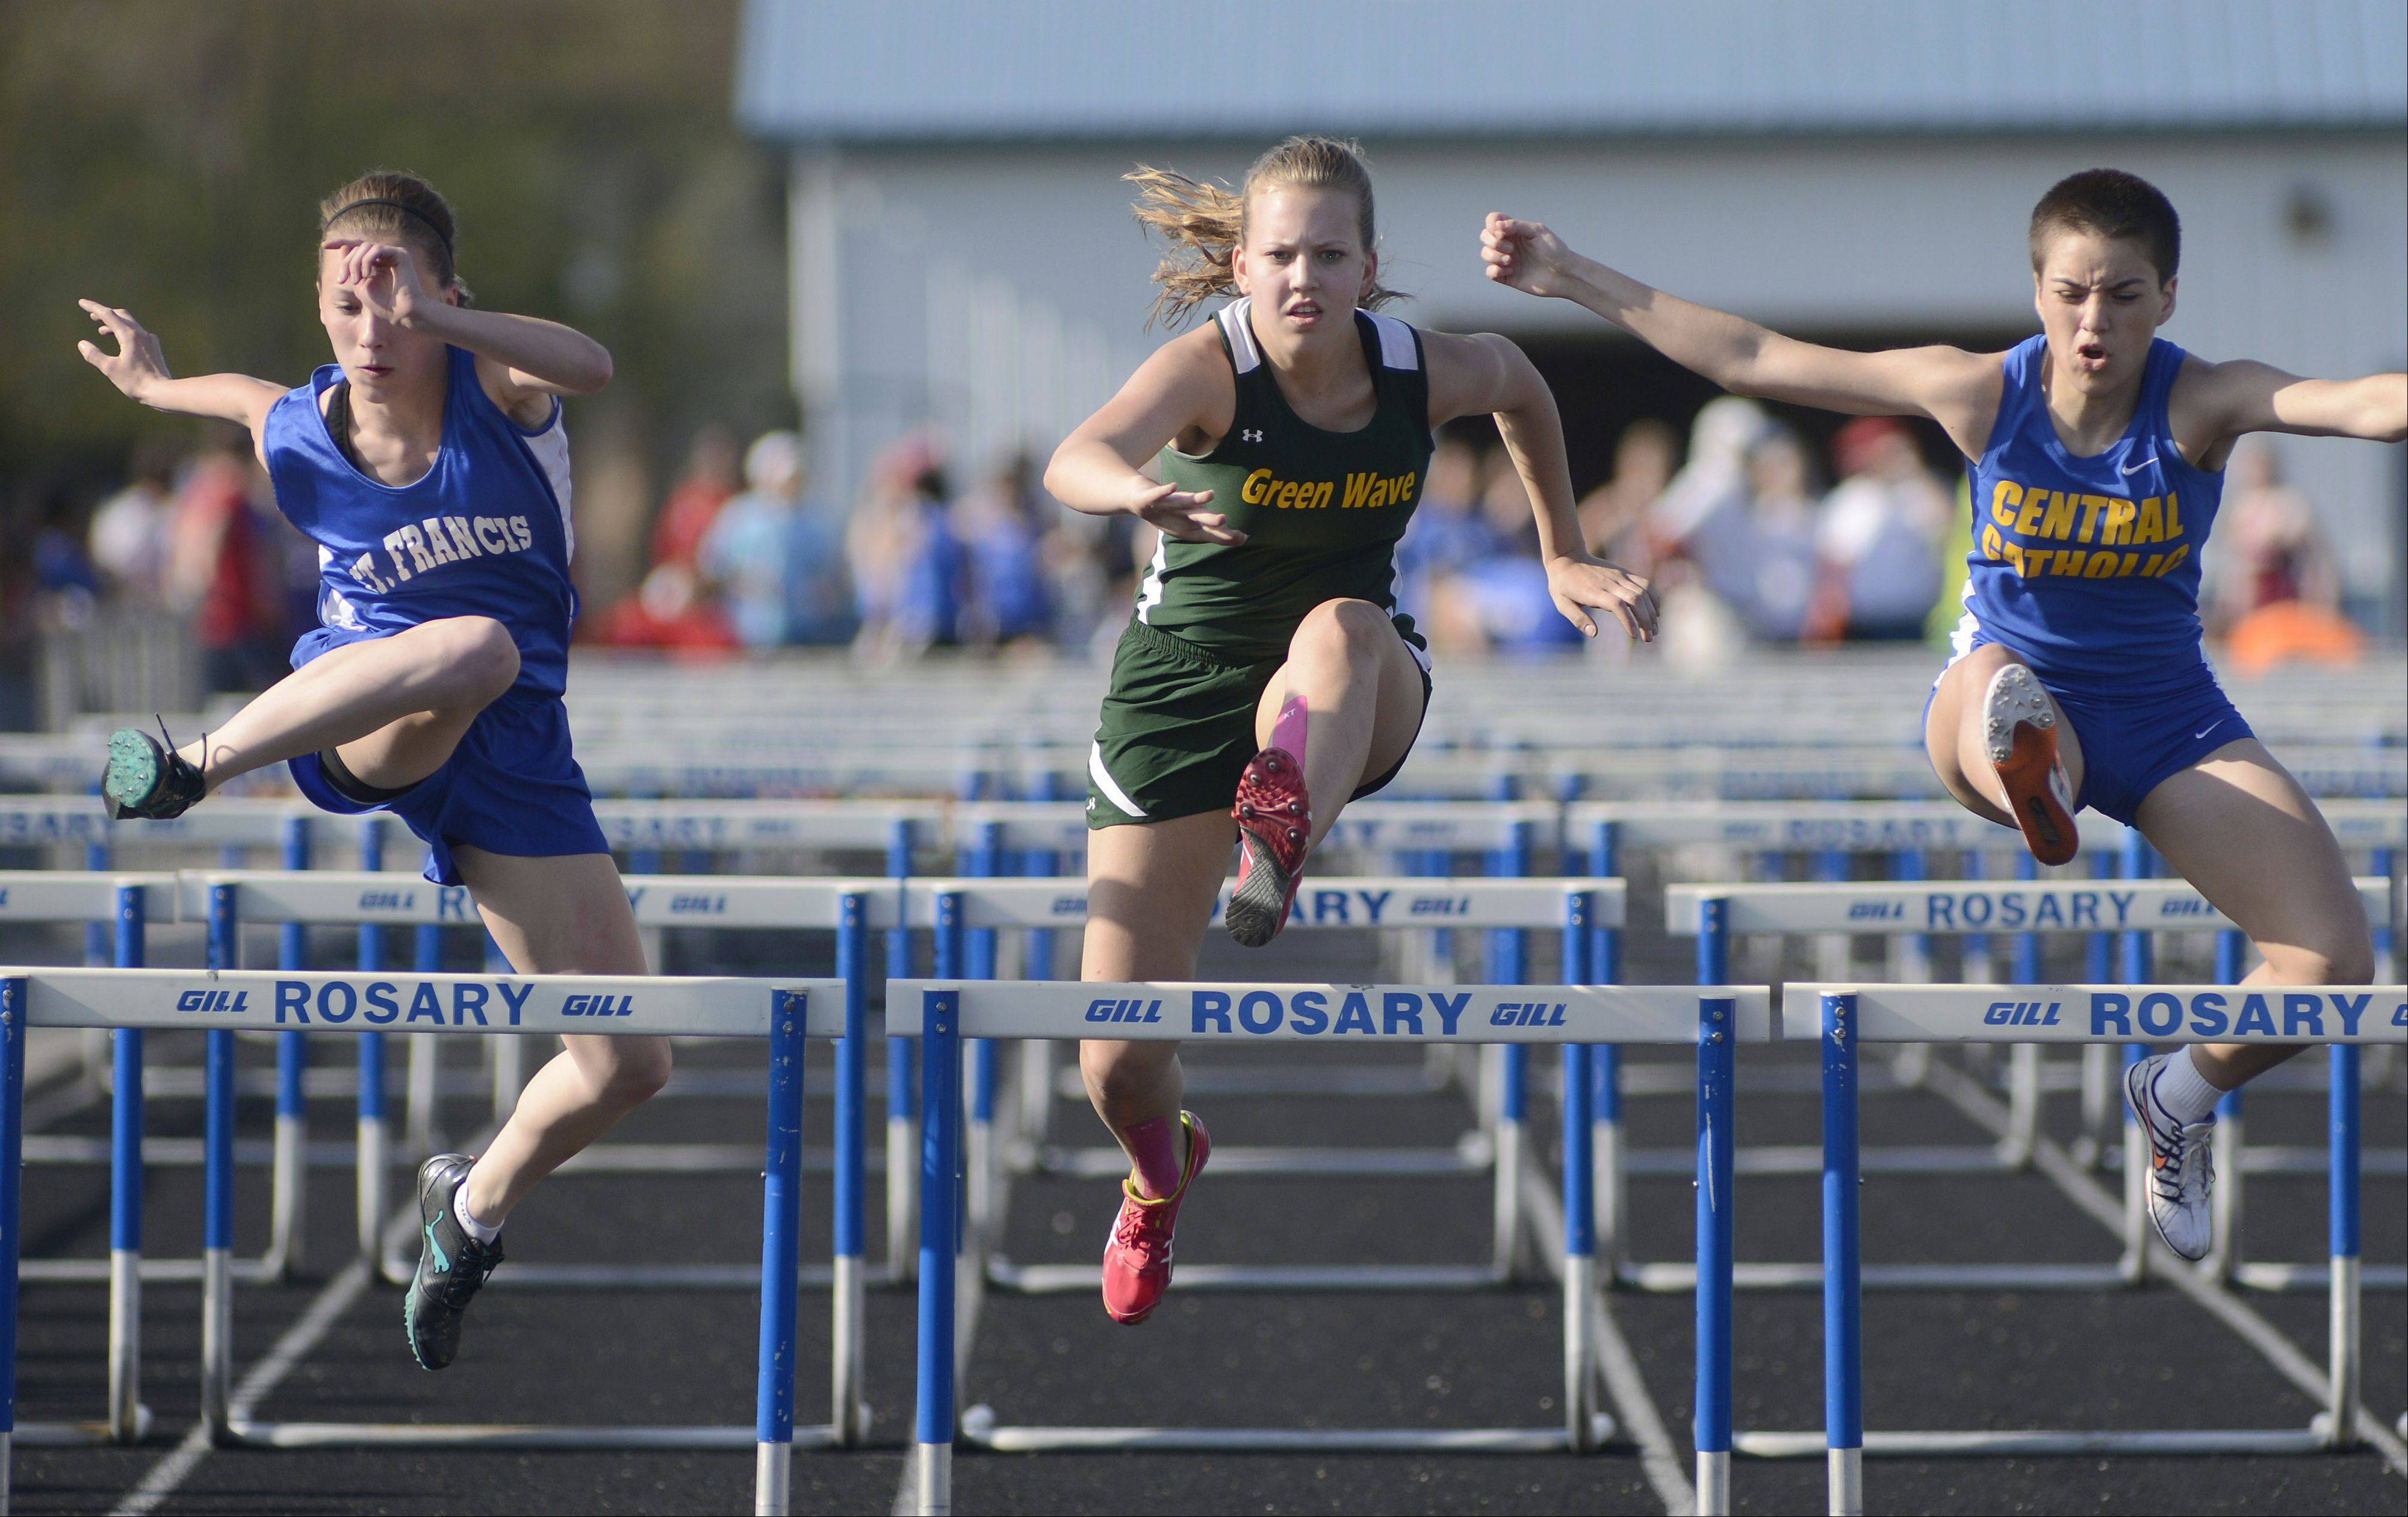 St. Francis' Kate Howard, St. Edward's Clare Cholwea and Aurora Central Catholic's Cynthya Elizondo in the first heat of the 100 meter hurdles at the Suburban Christian Conference on Wednesday, May 1.